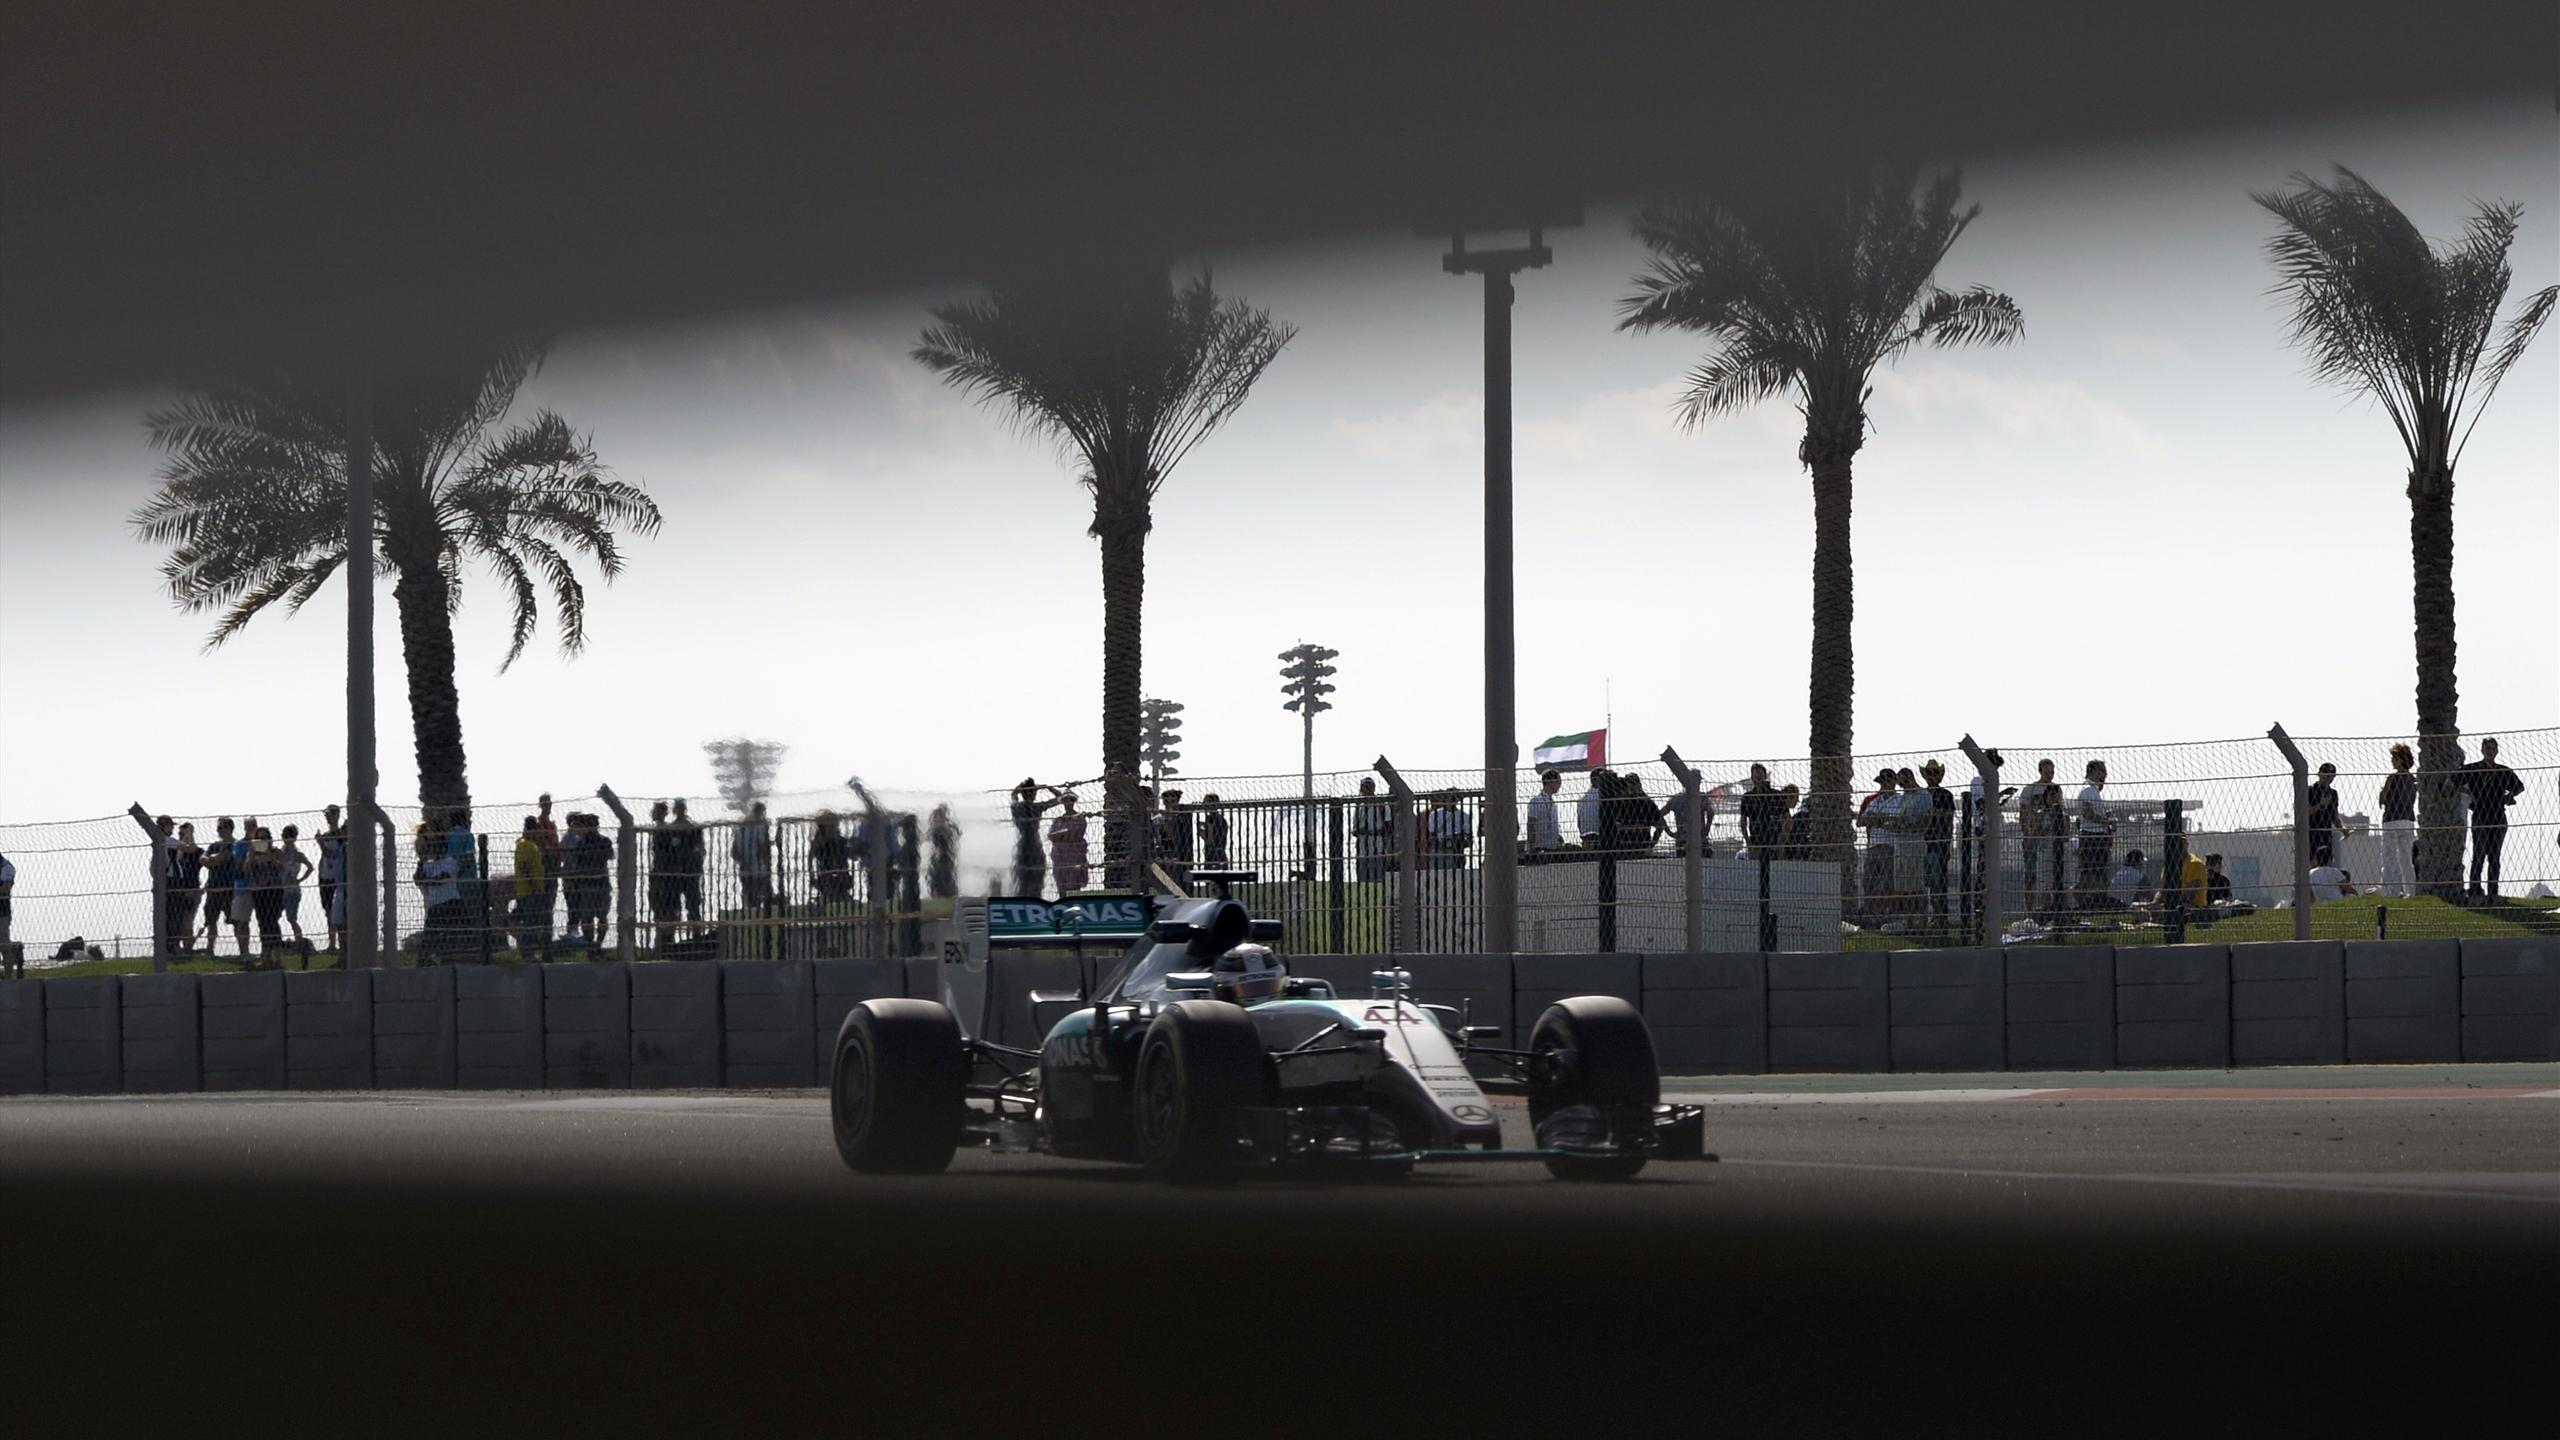 Mercedes AMG Petronas F1 Team's British driver Lewis Hamilton drives during the first practice session at the Yas Marina circuit in Abu Dhabi on November 27, 2015 ahead of the Abu Dhabi Formula One Grand Prix